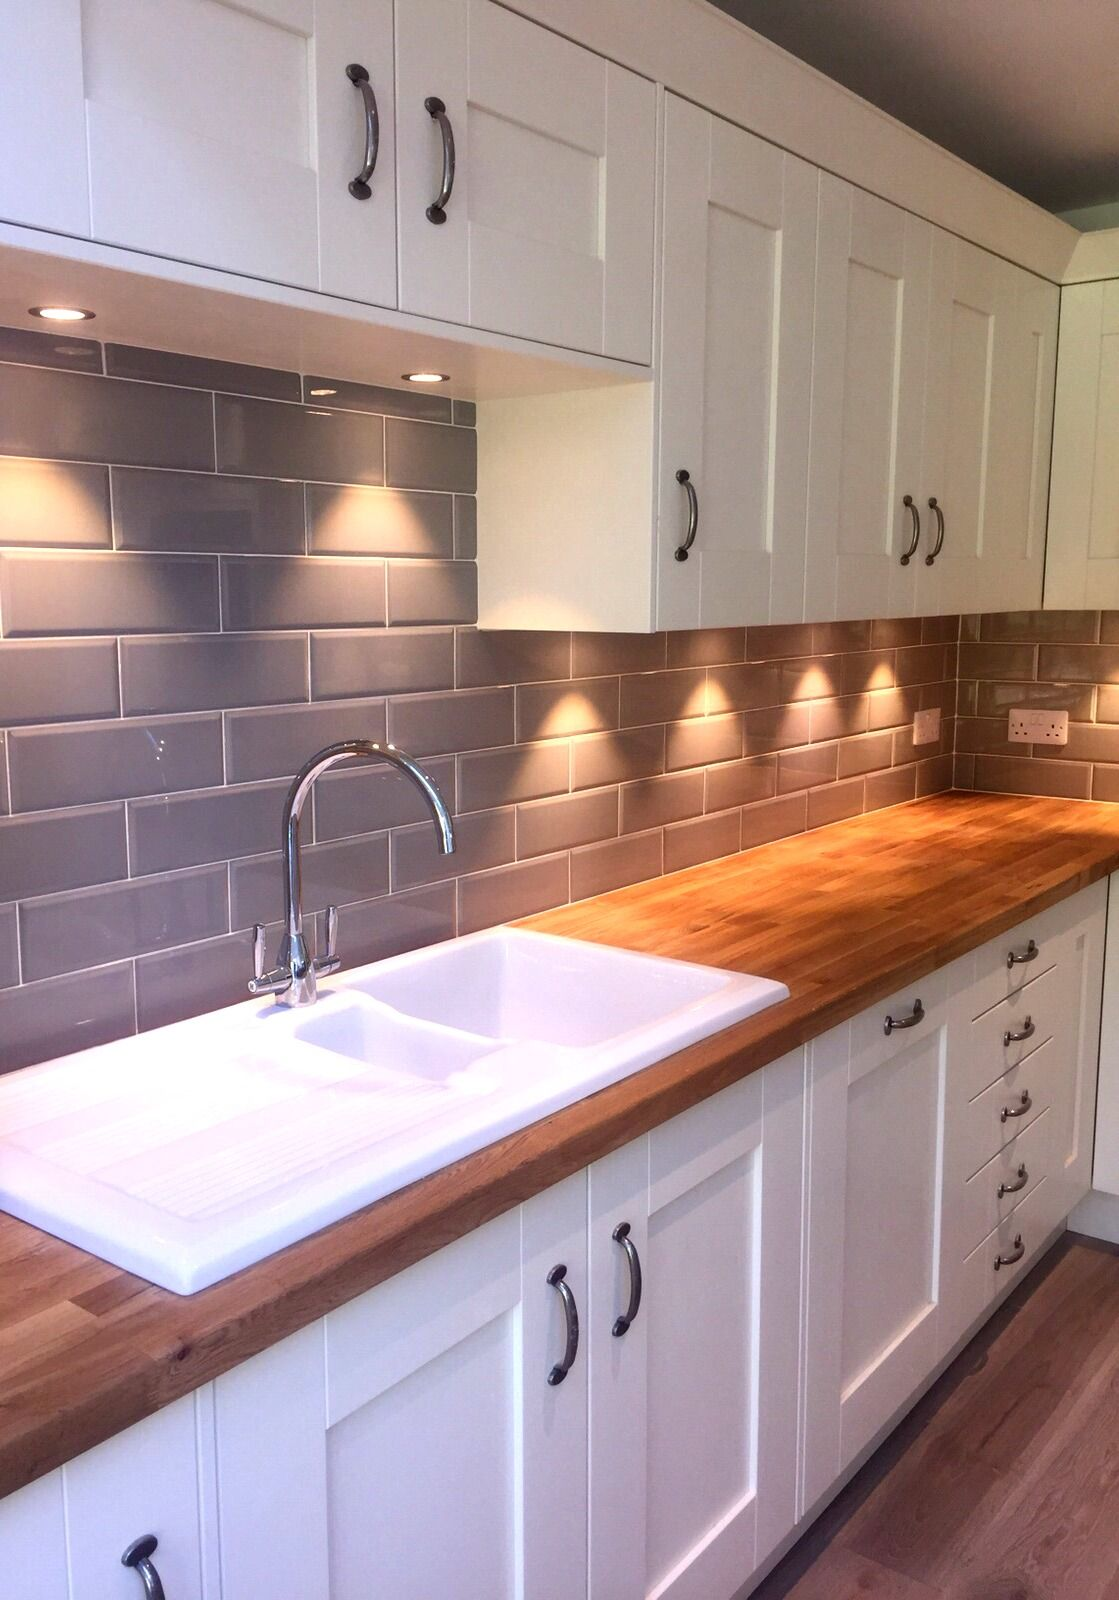 Awesome Our Edge Grigio Tiles Look Lovely In A Cream Kitchen With Wooden Worktops